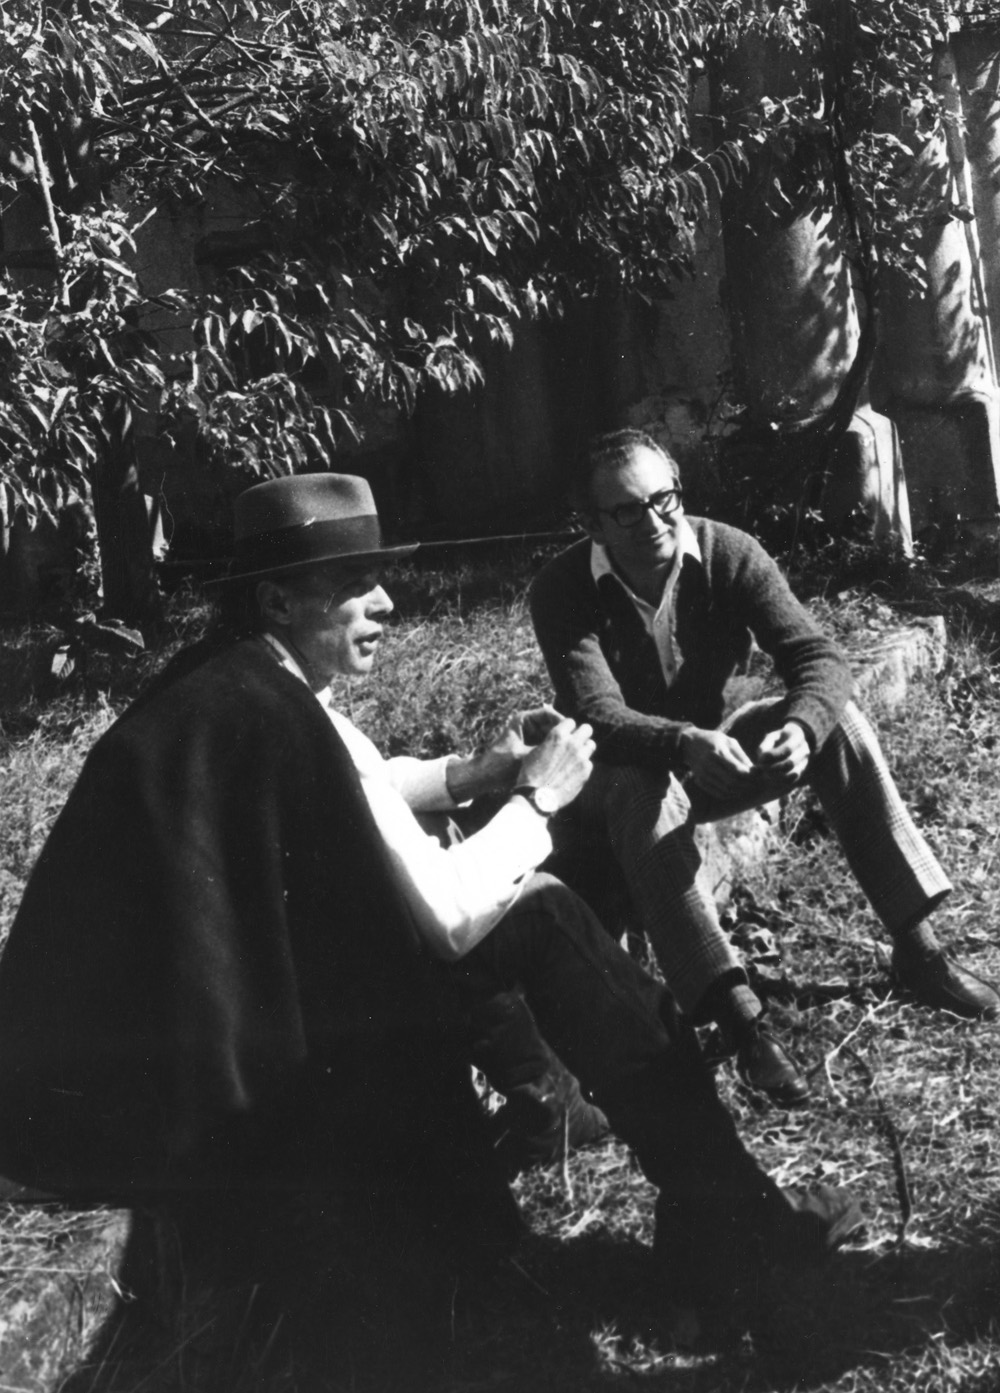 Joseph Beuys and Pasquale Trisorio at Villa Orlandi, 1971